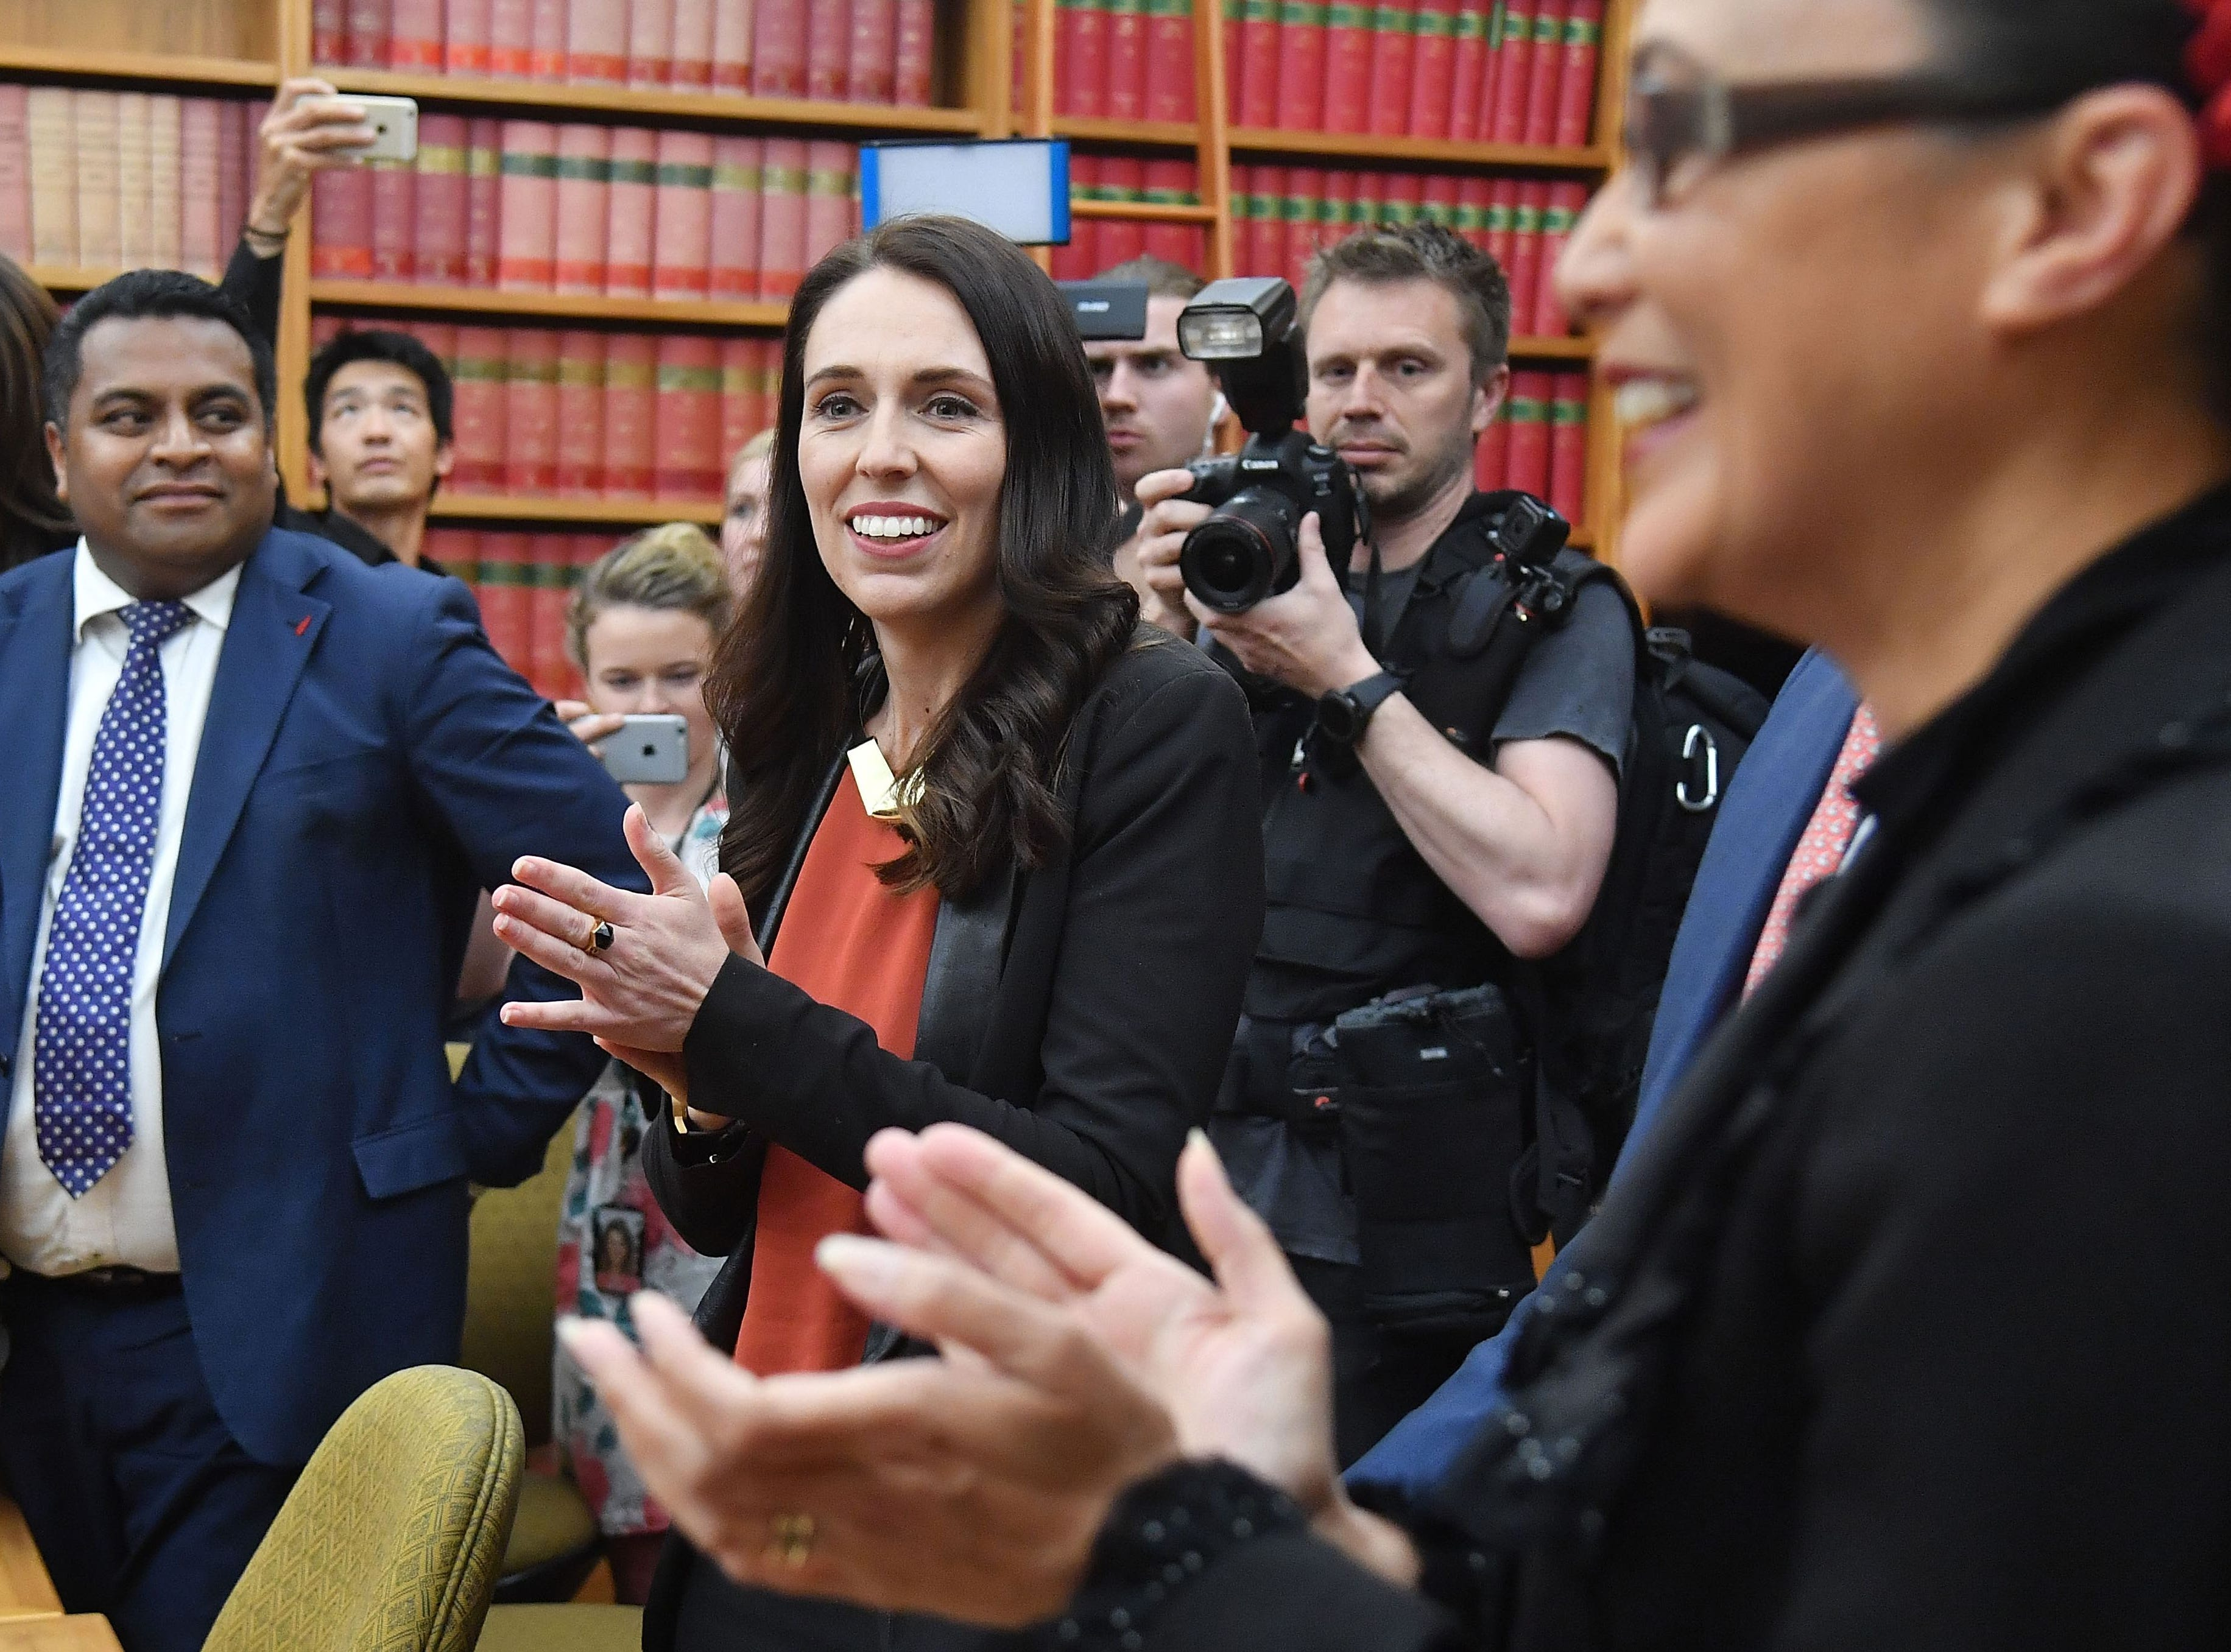 New Zealand's Labour party leader Jacinda Ardern receives applause as she is welcomed to her first caucus meeting as Prime Minister-elect at Parliament in Wellington on Oct. 20, 2017.New Zealand's Prime Minister-elect Jacinda Ardern expressed confidence October 20 that her new government would see out its full term, despite long-standing tensions between her coalition partners.